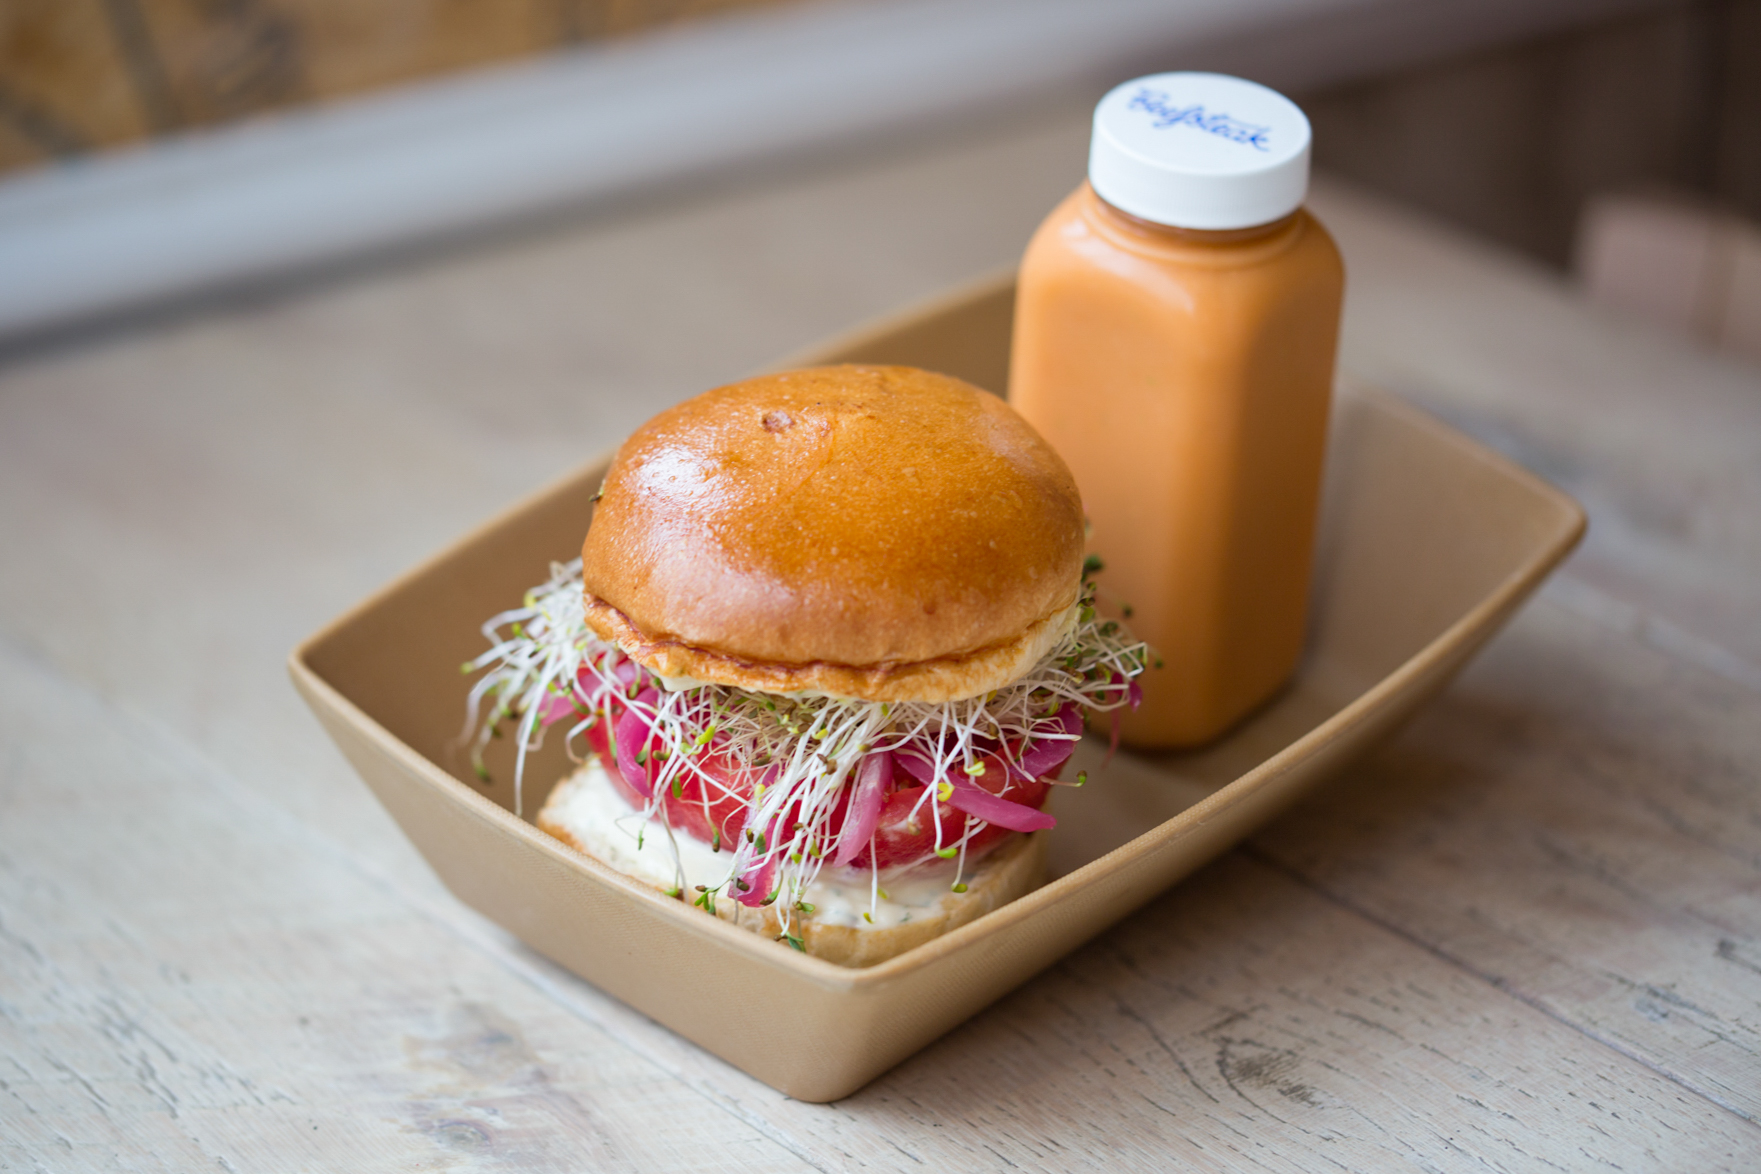 MealPal, a lunchtime subscription service already available in New York, San Francisco and Miami, comes to D.C. Sept. 19. It promises quality meals from nearby restaurants for nearly half the cost. (Courtesy MealPal)